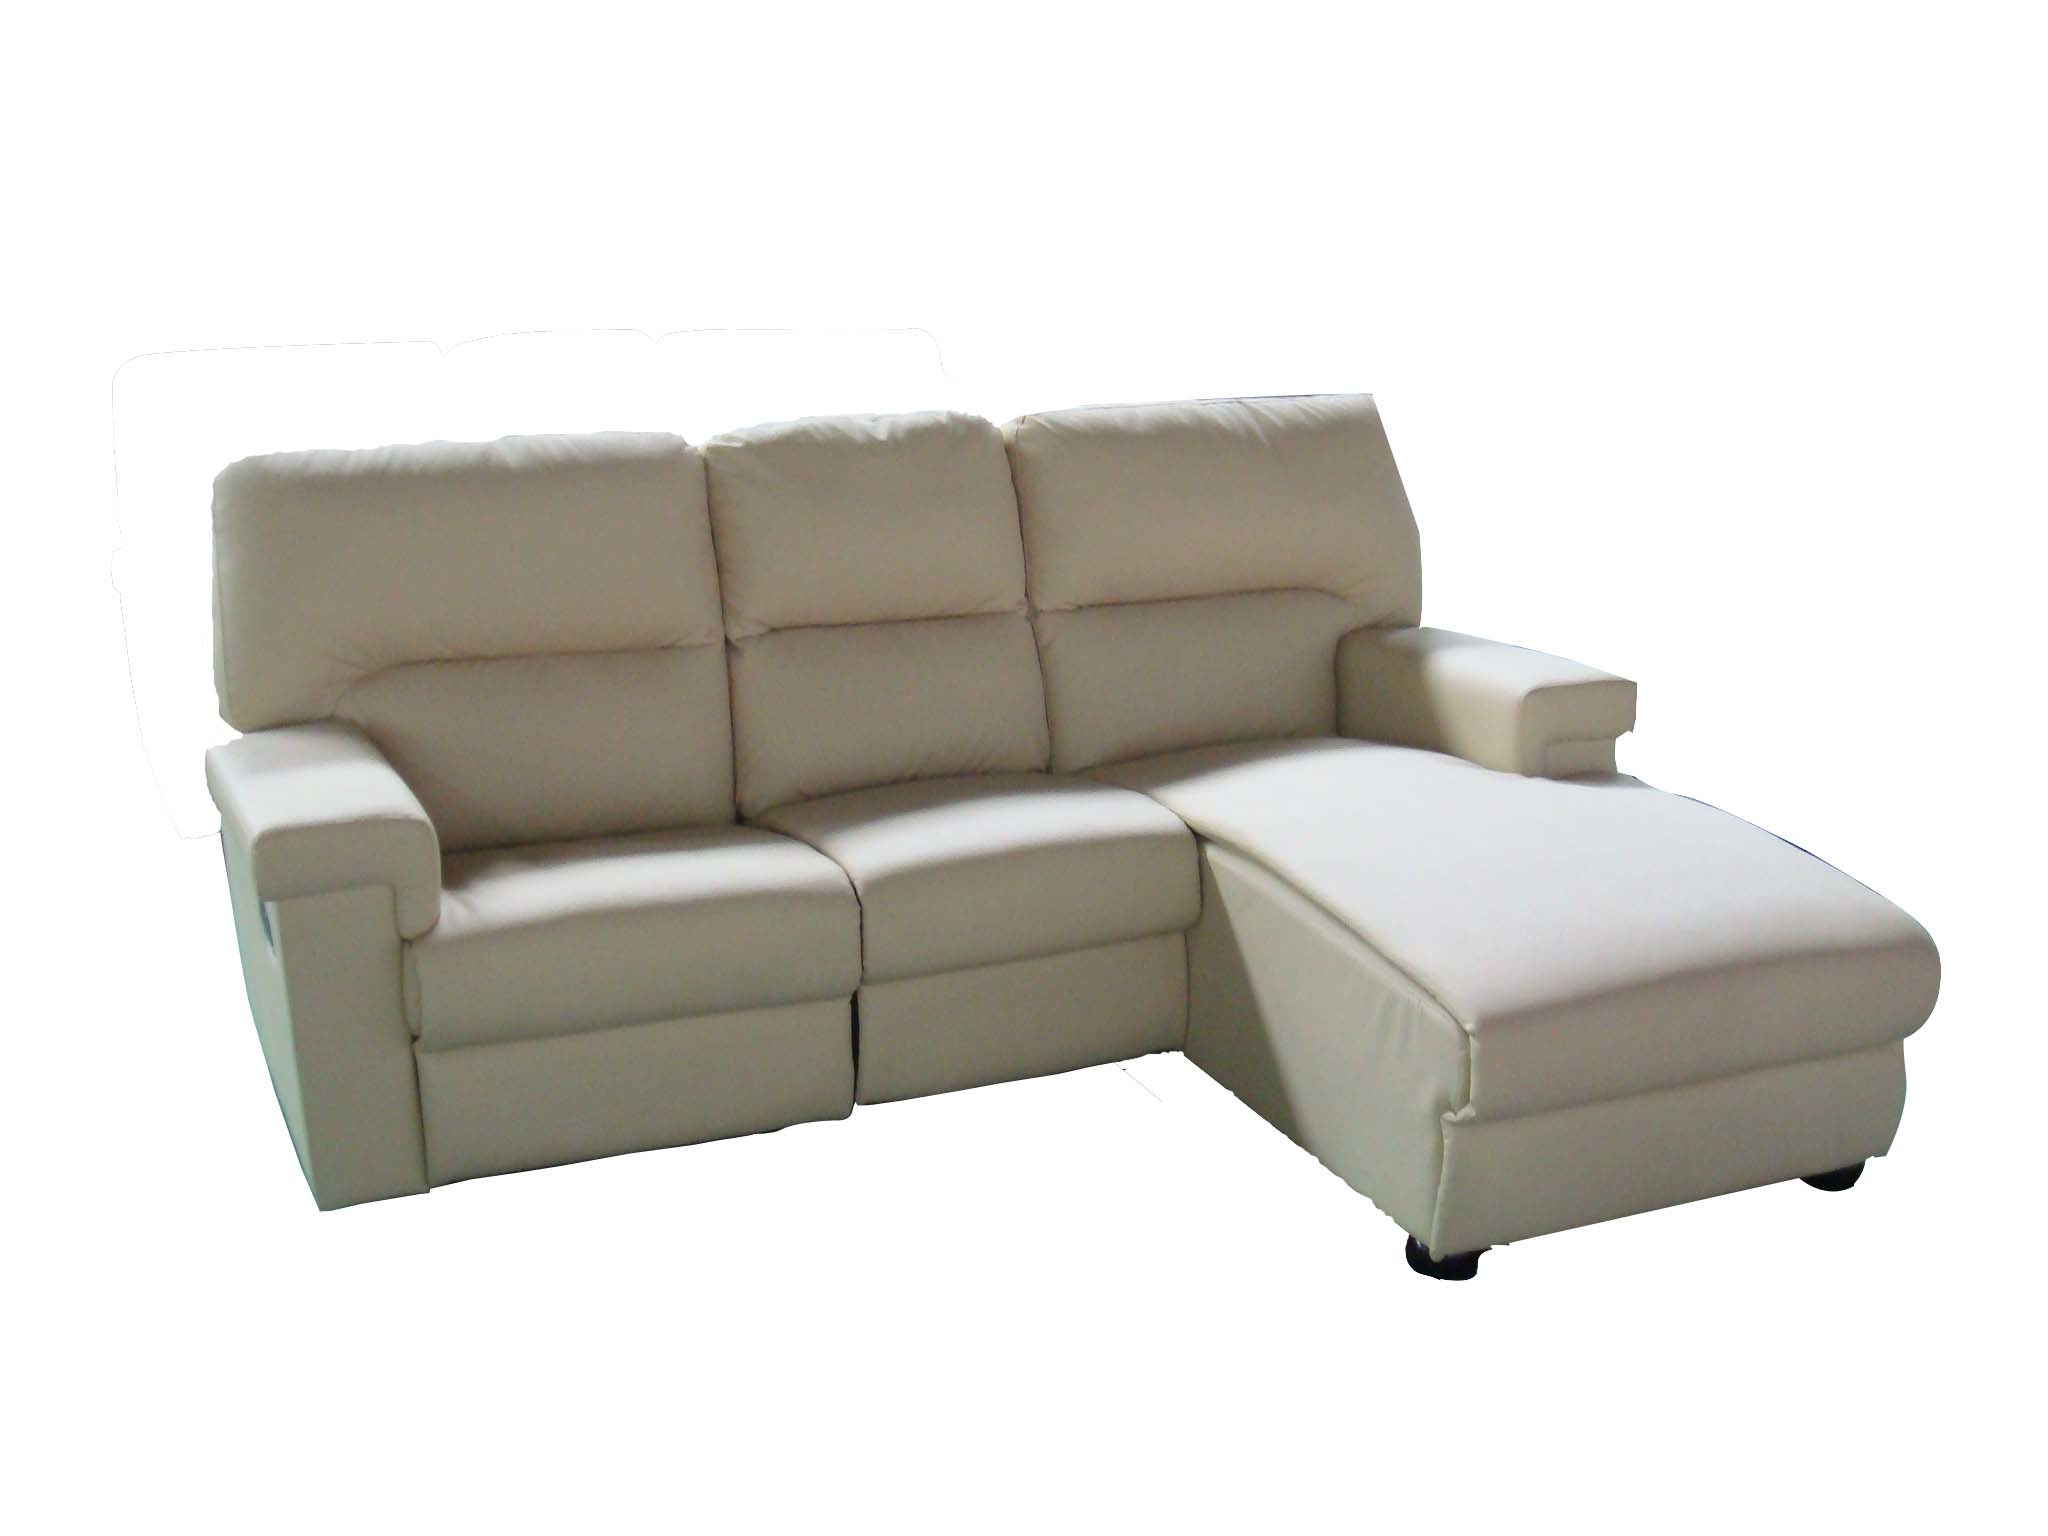 leather modern couch happy memorial day 2014. Black Bedroom Furniture Sets. Home Design Ideas